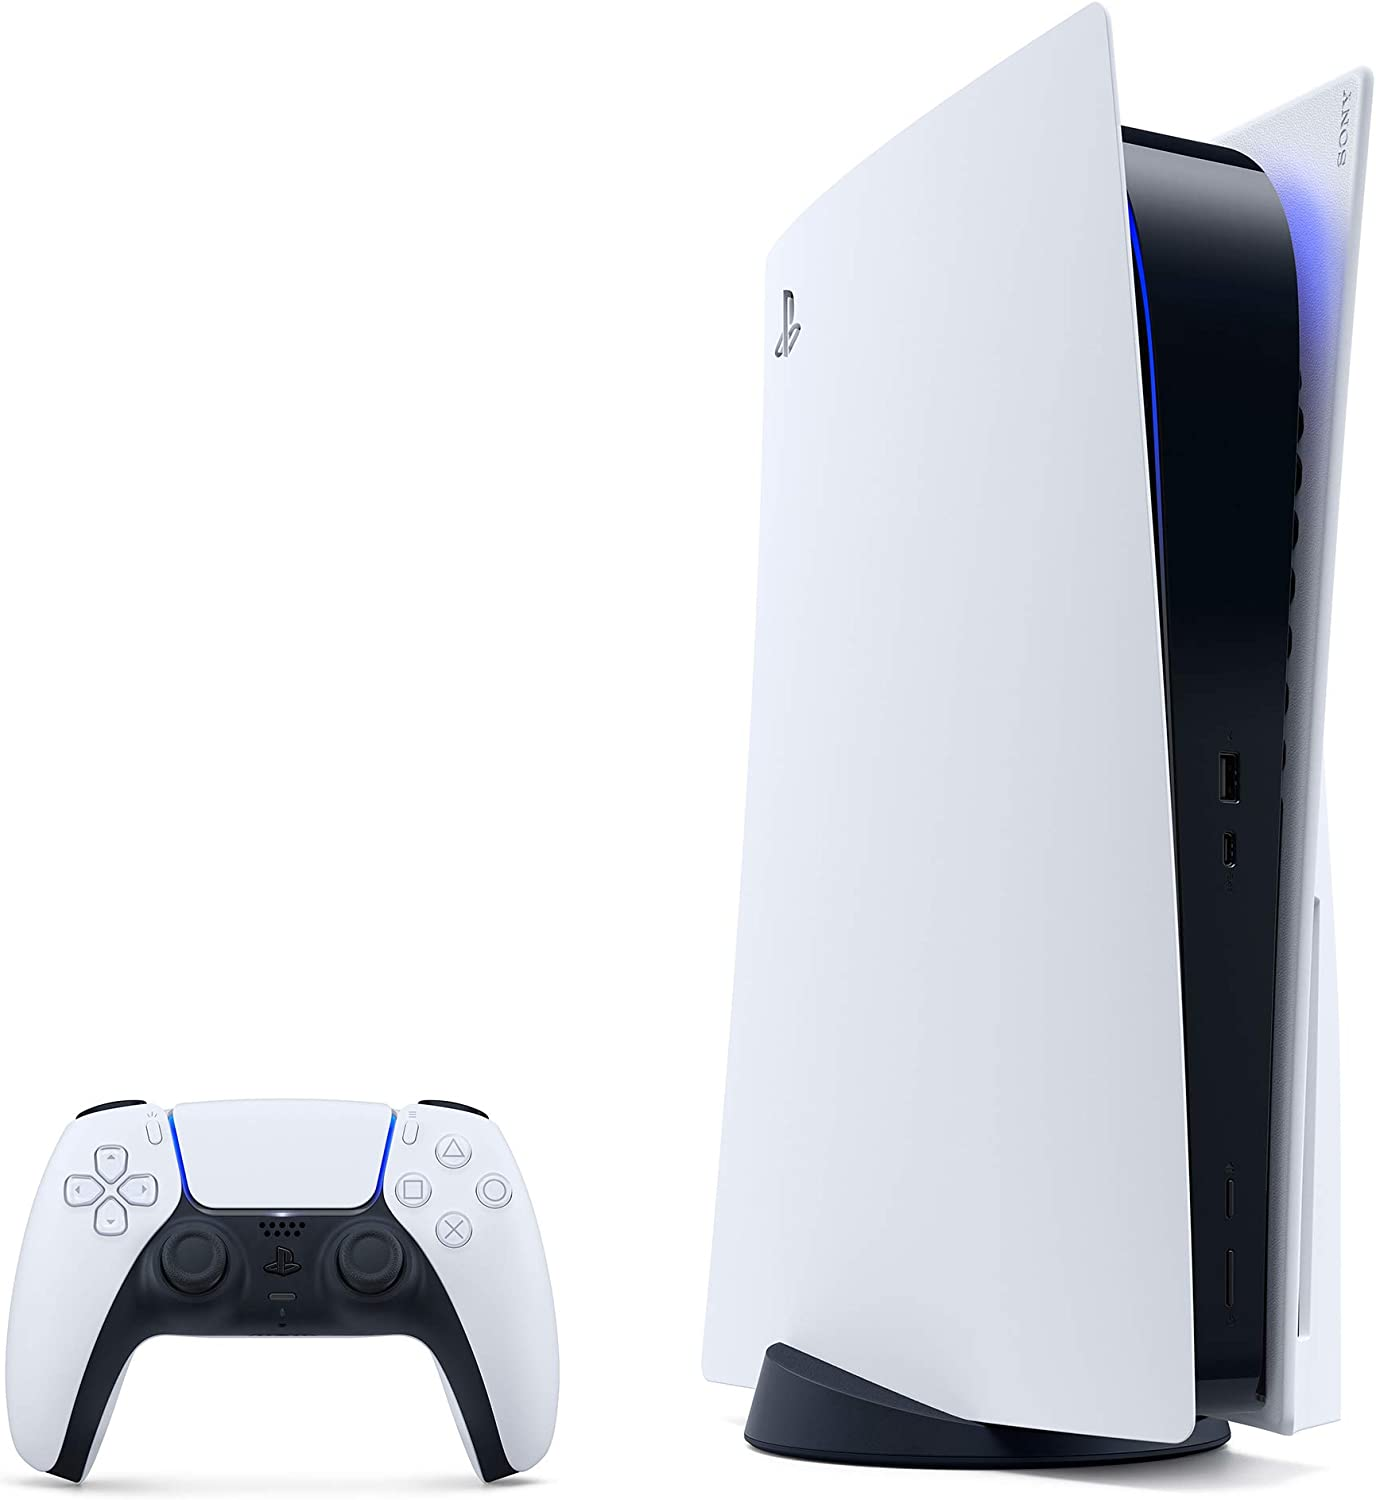 PlayStation 5 (CFI-1000A01) - amazon